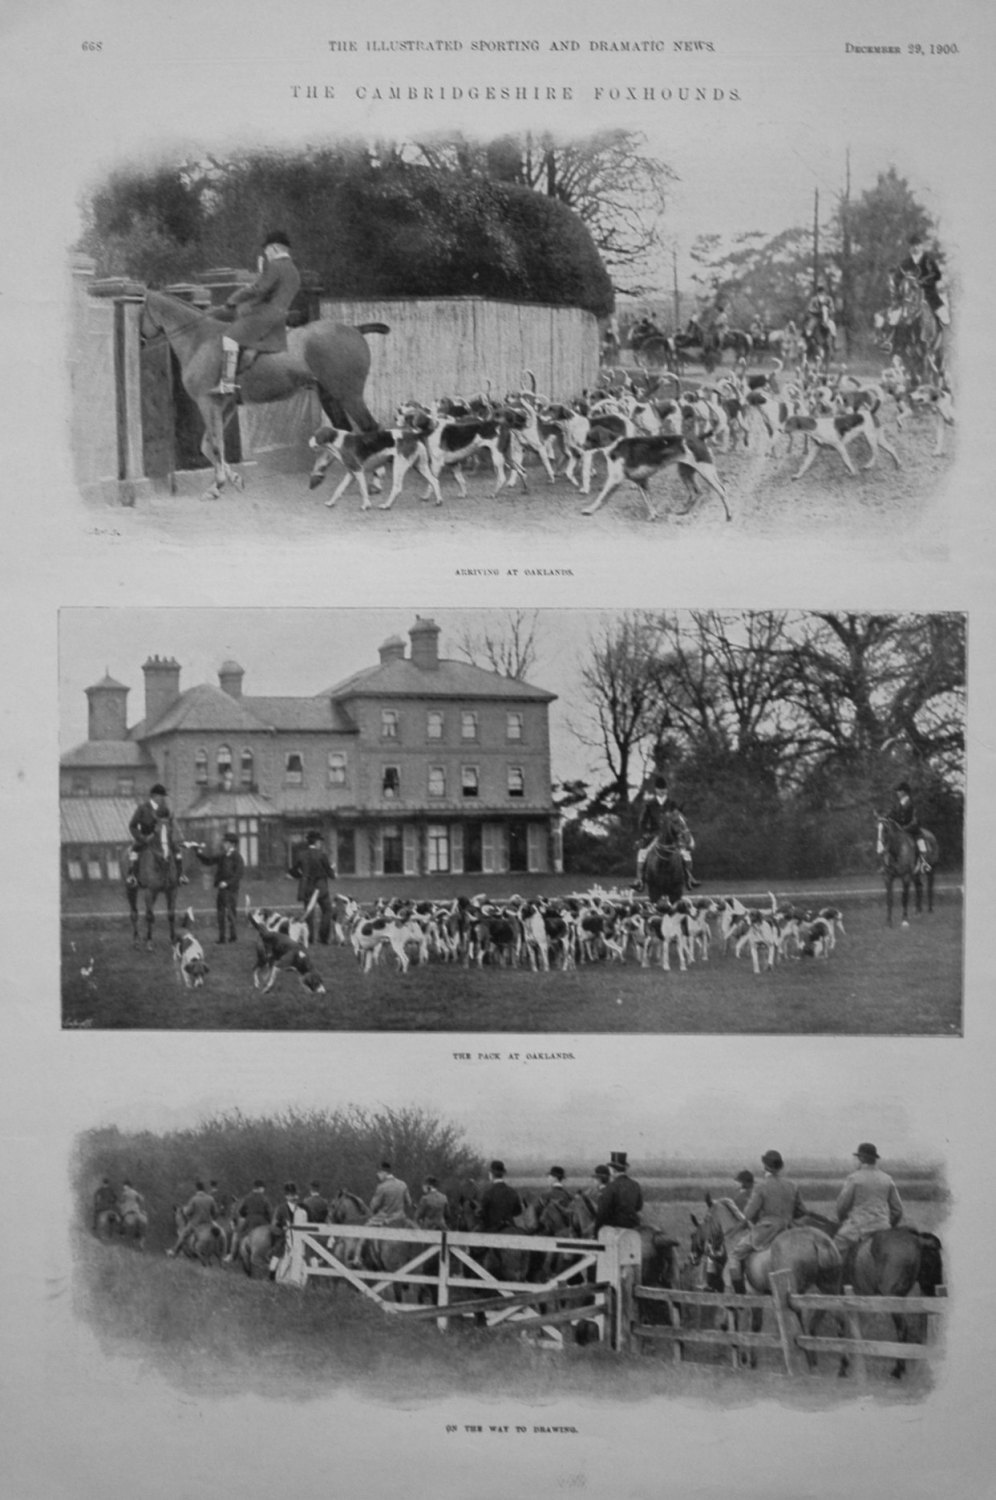 The Cambridgeshire Foxhounds.